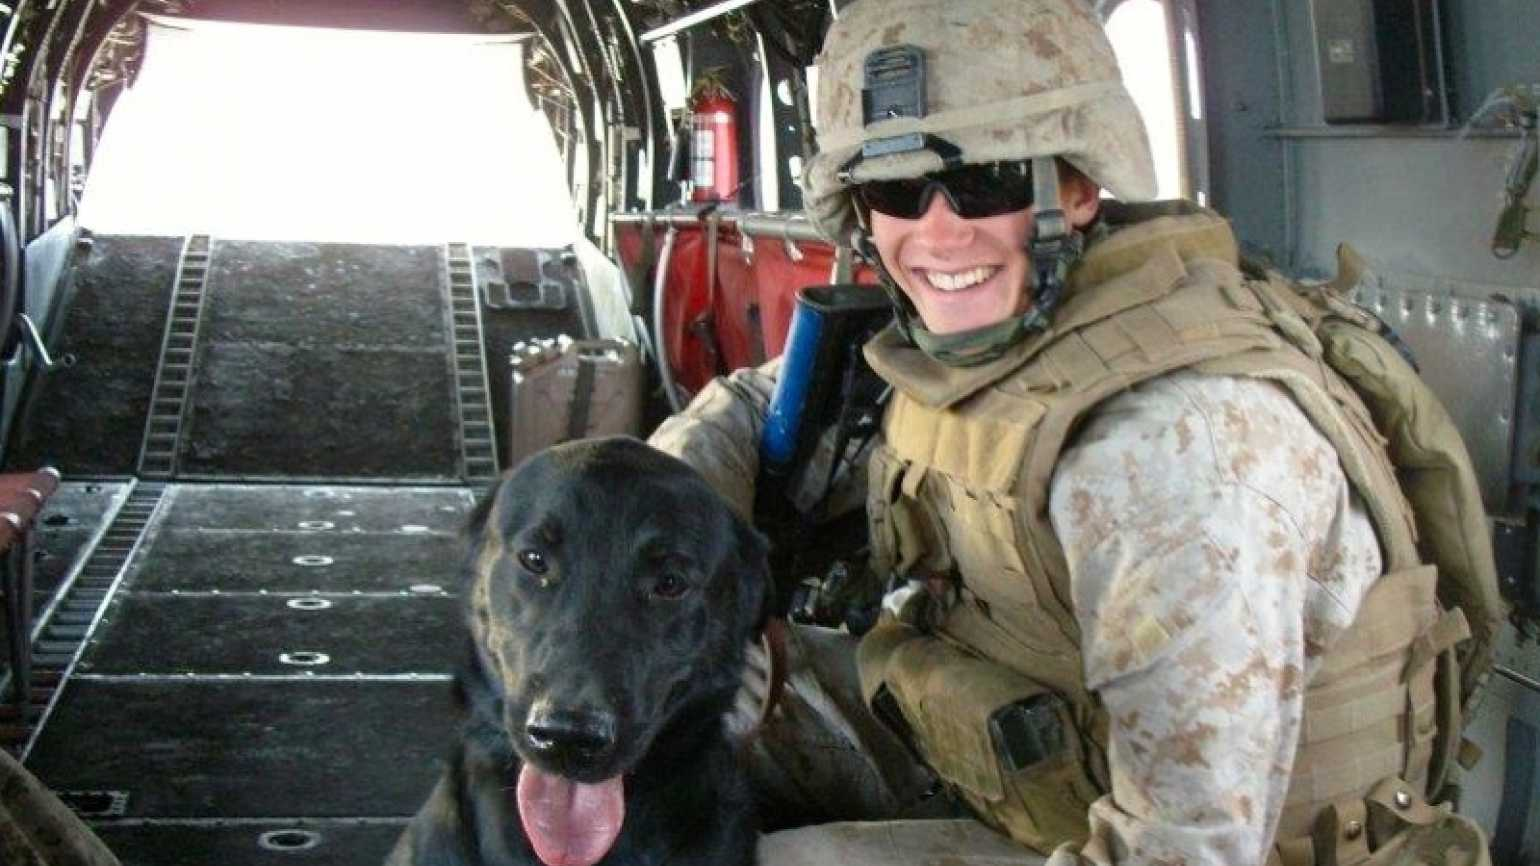 Outreach Ministries blogger Edie Melson's Marine son, Jimmy, and dog Seger